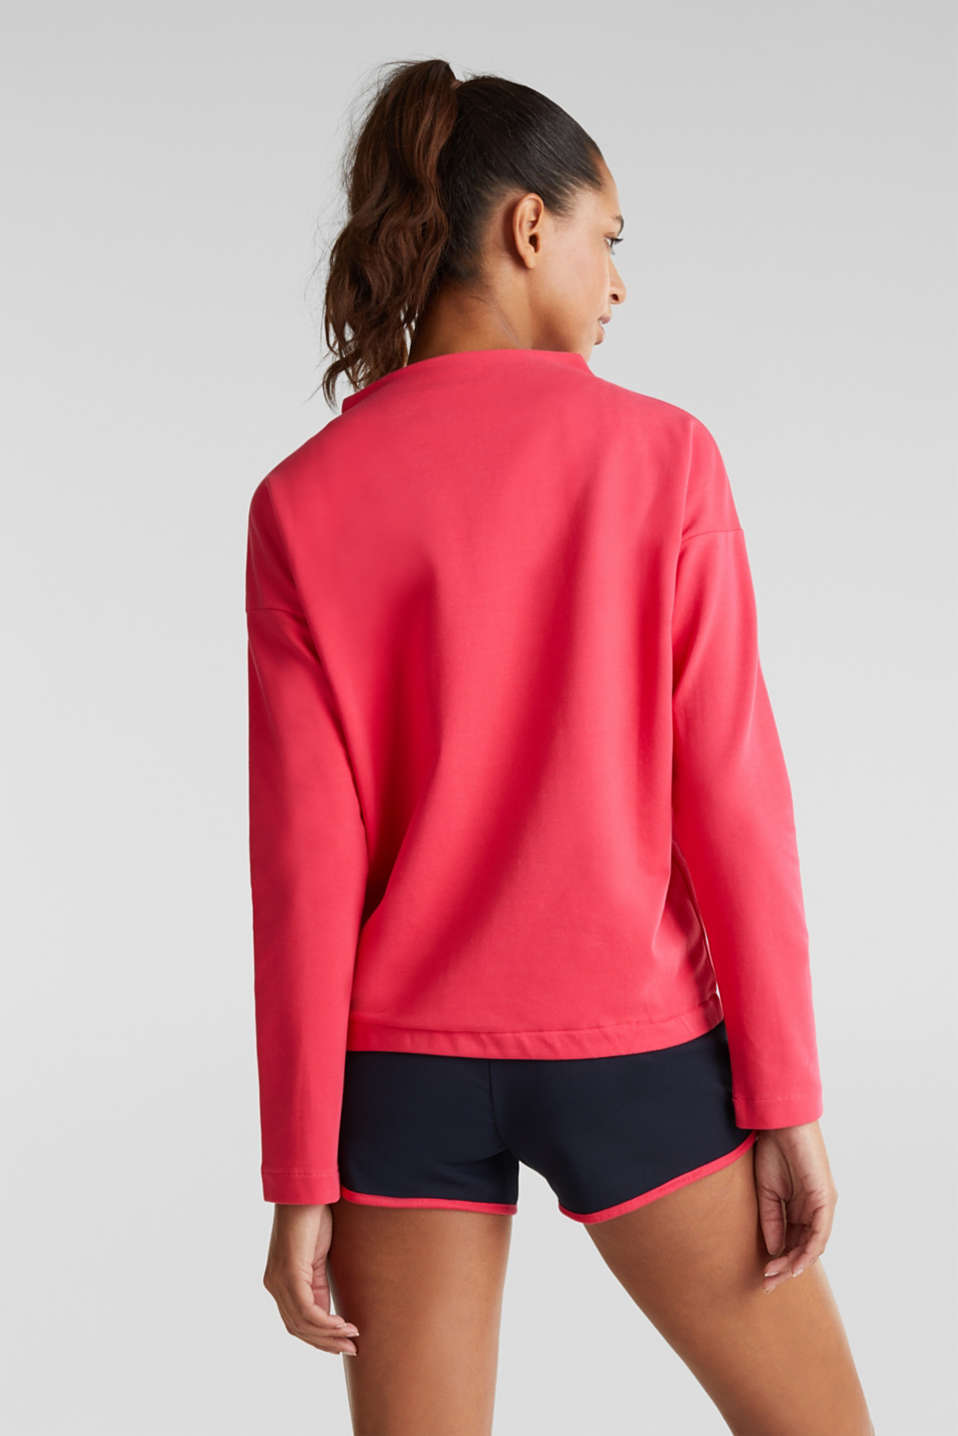 Stretch sweatshirt with a stand-up collar and stripes, BERRY RED, detail image number 2